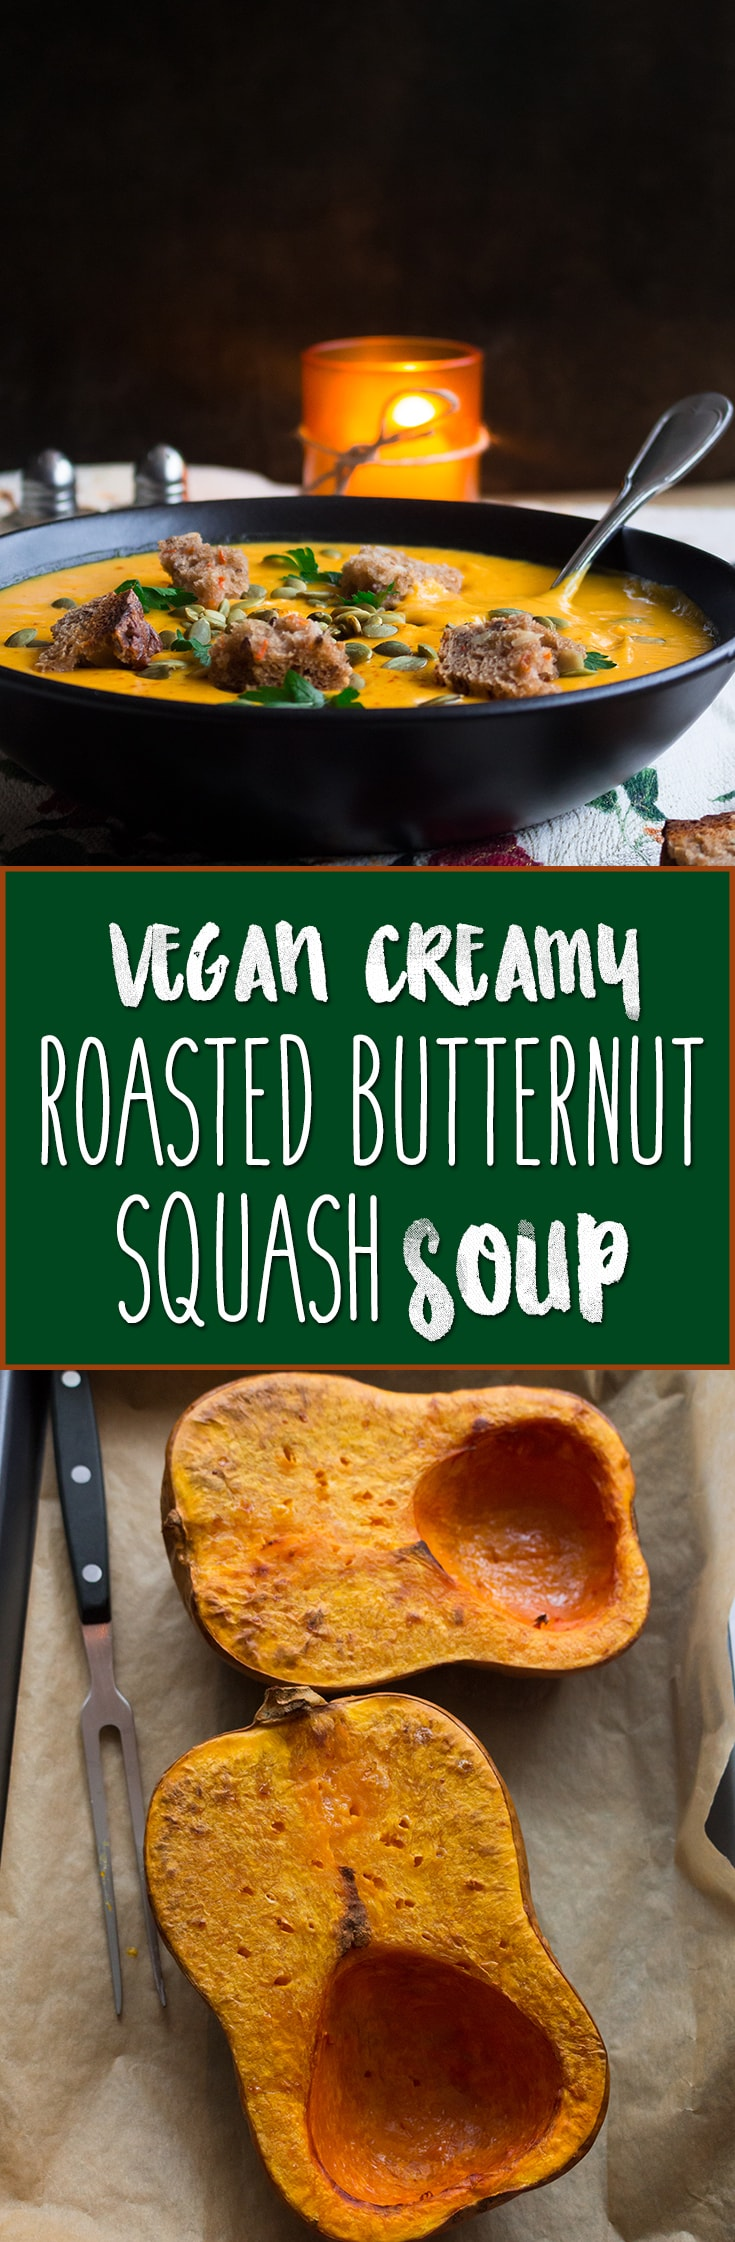 Vegan Creamy Roasted Butternut Squash Soup - delicious and easy fall recipe and the ultime comfort food! It's freezer friendly so you can double the recipe to enjoy it later. | thehealthfulideas.com